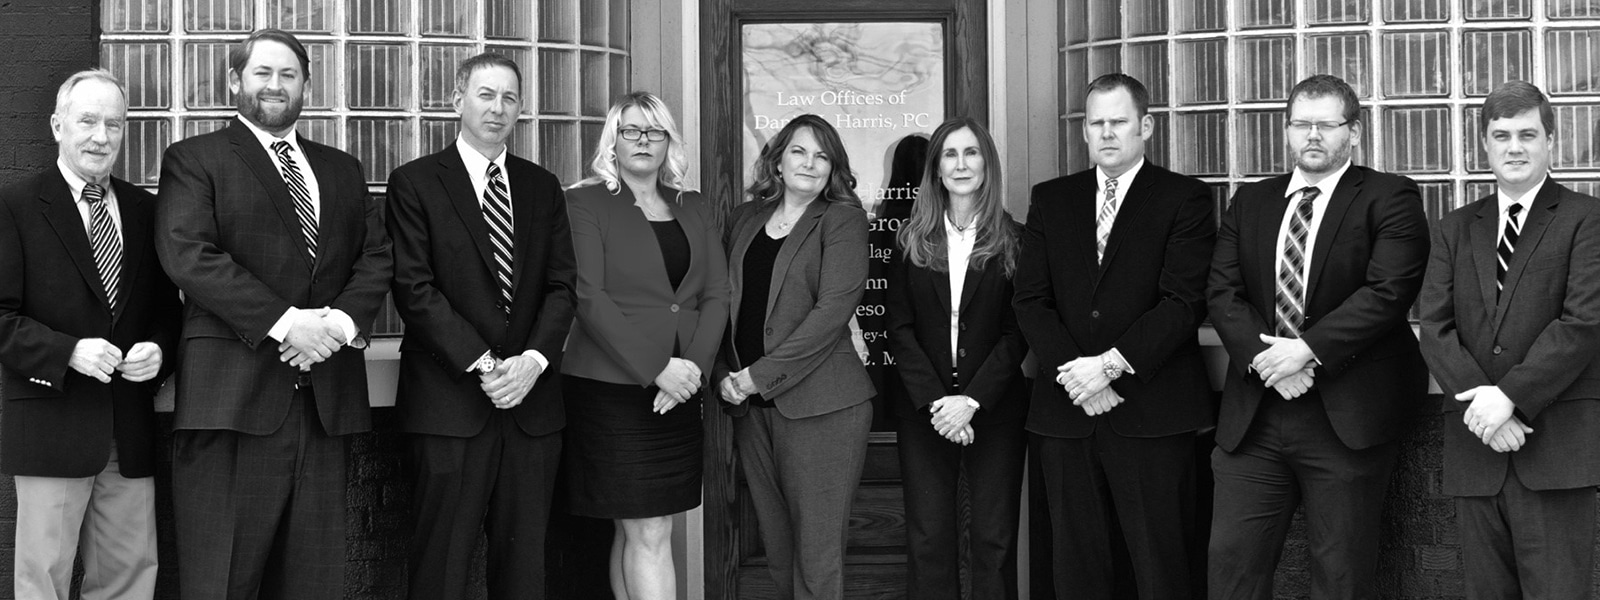 The Law Offices of Daniel J. Harris, P.C. Attorneys 2019